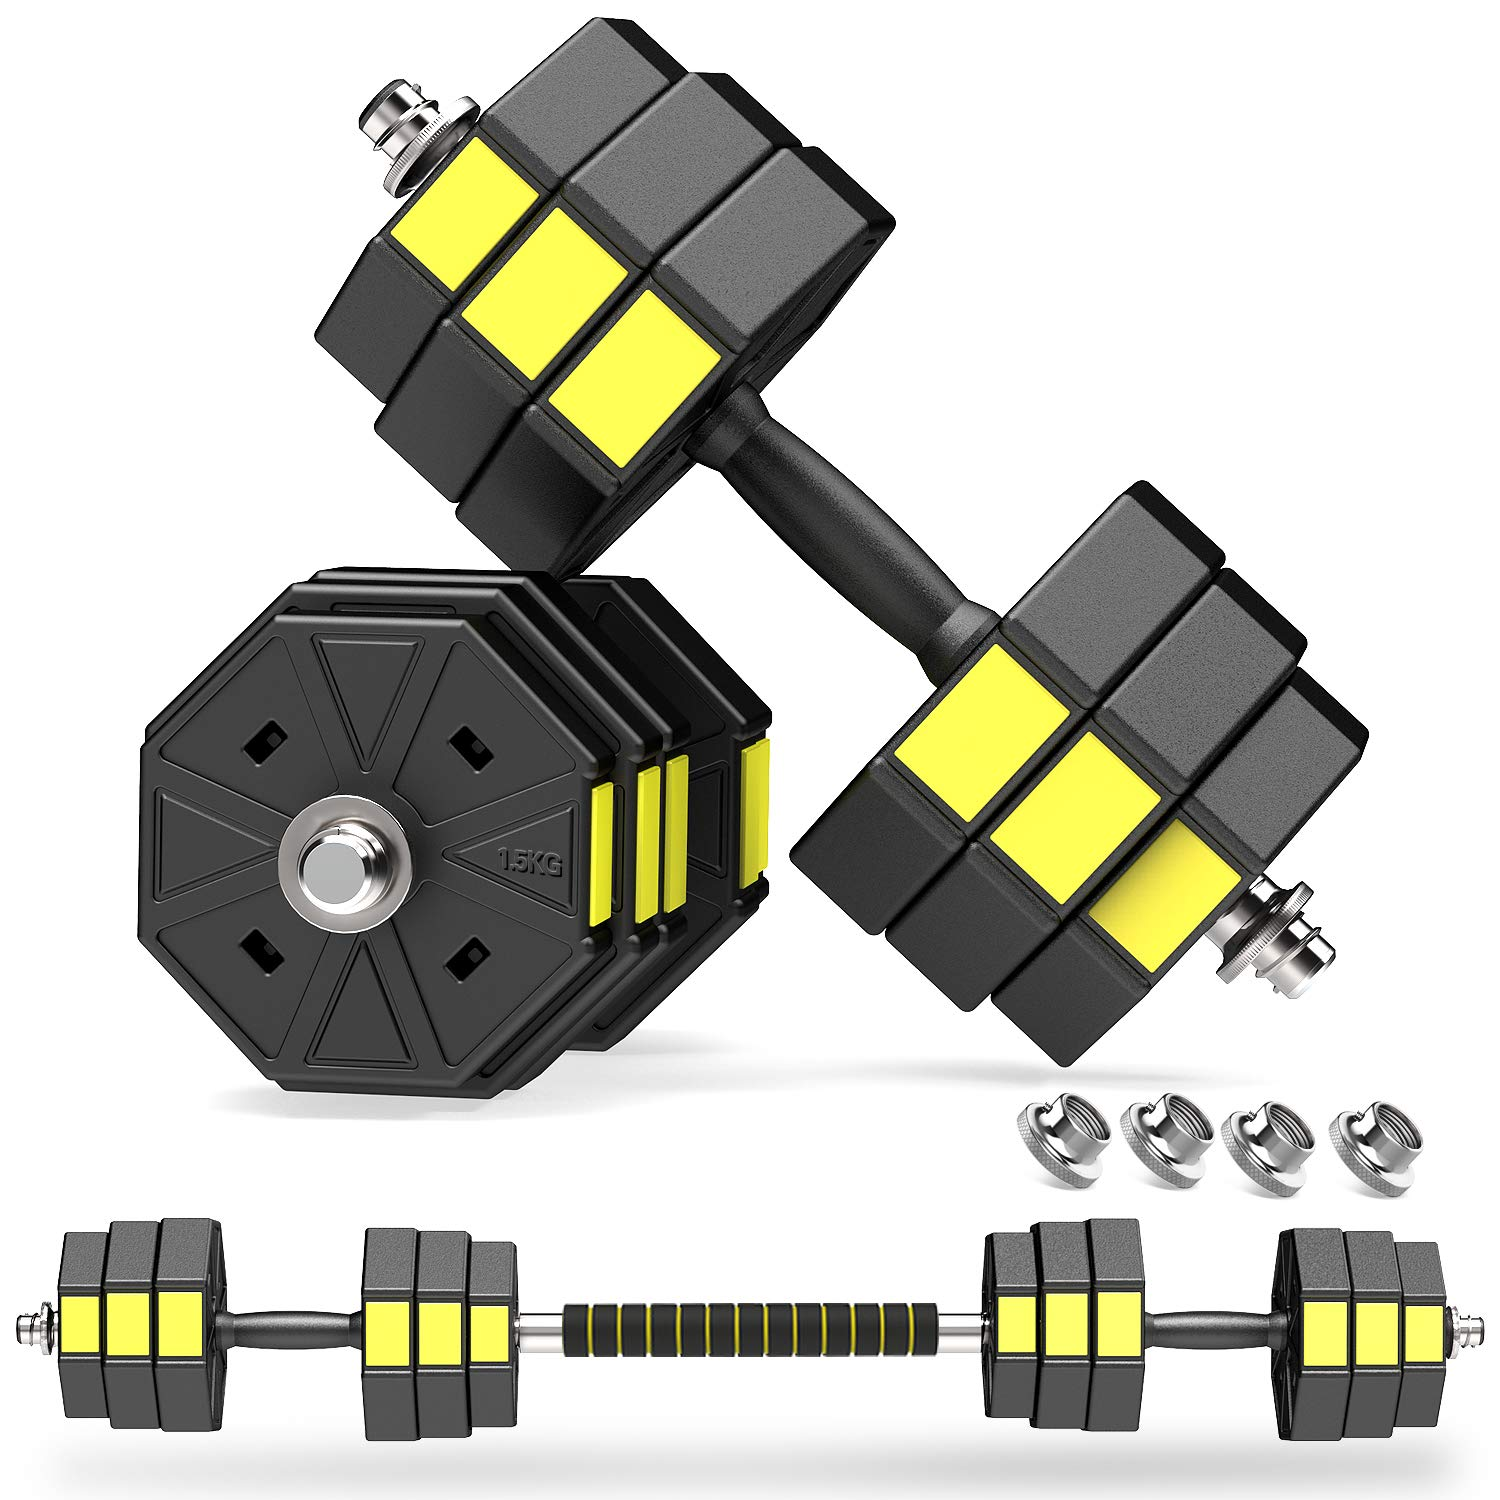 PANMAX Adjustable Dumbbells Barbell Set of 2 UP to 44/66 lbs Free